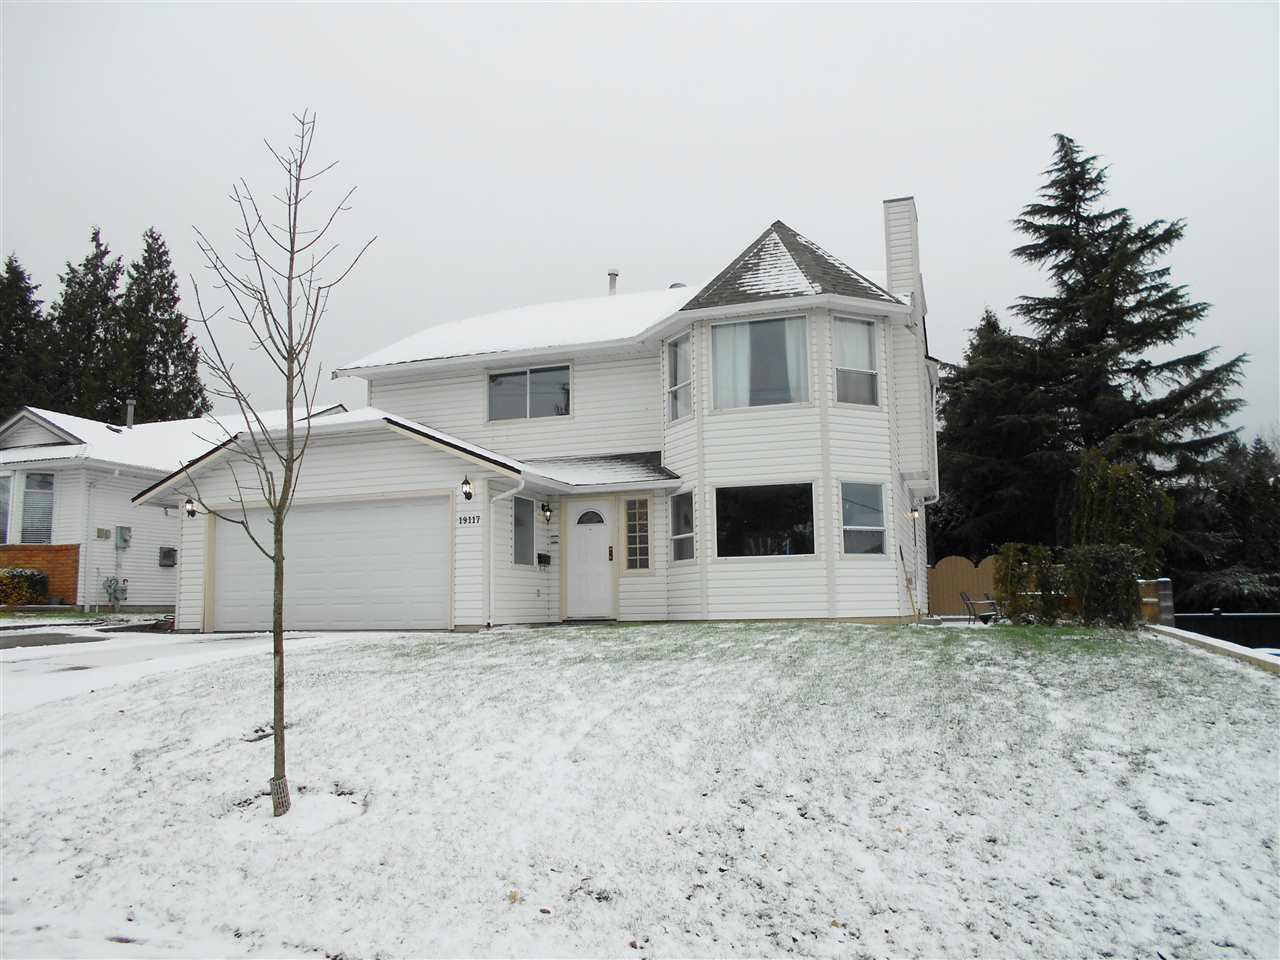 Main Photo: 19117 60 AVENUE in : Cloverdale BC House for sale (Cloverdale)  : MLS®# R2127372